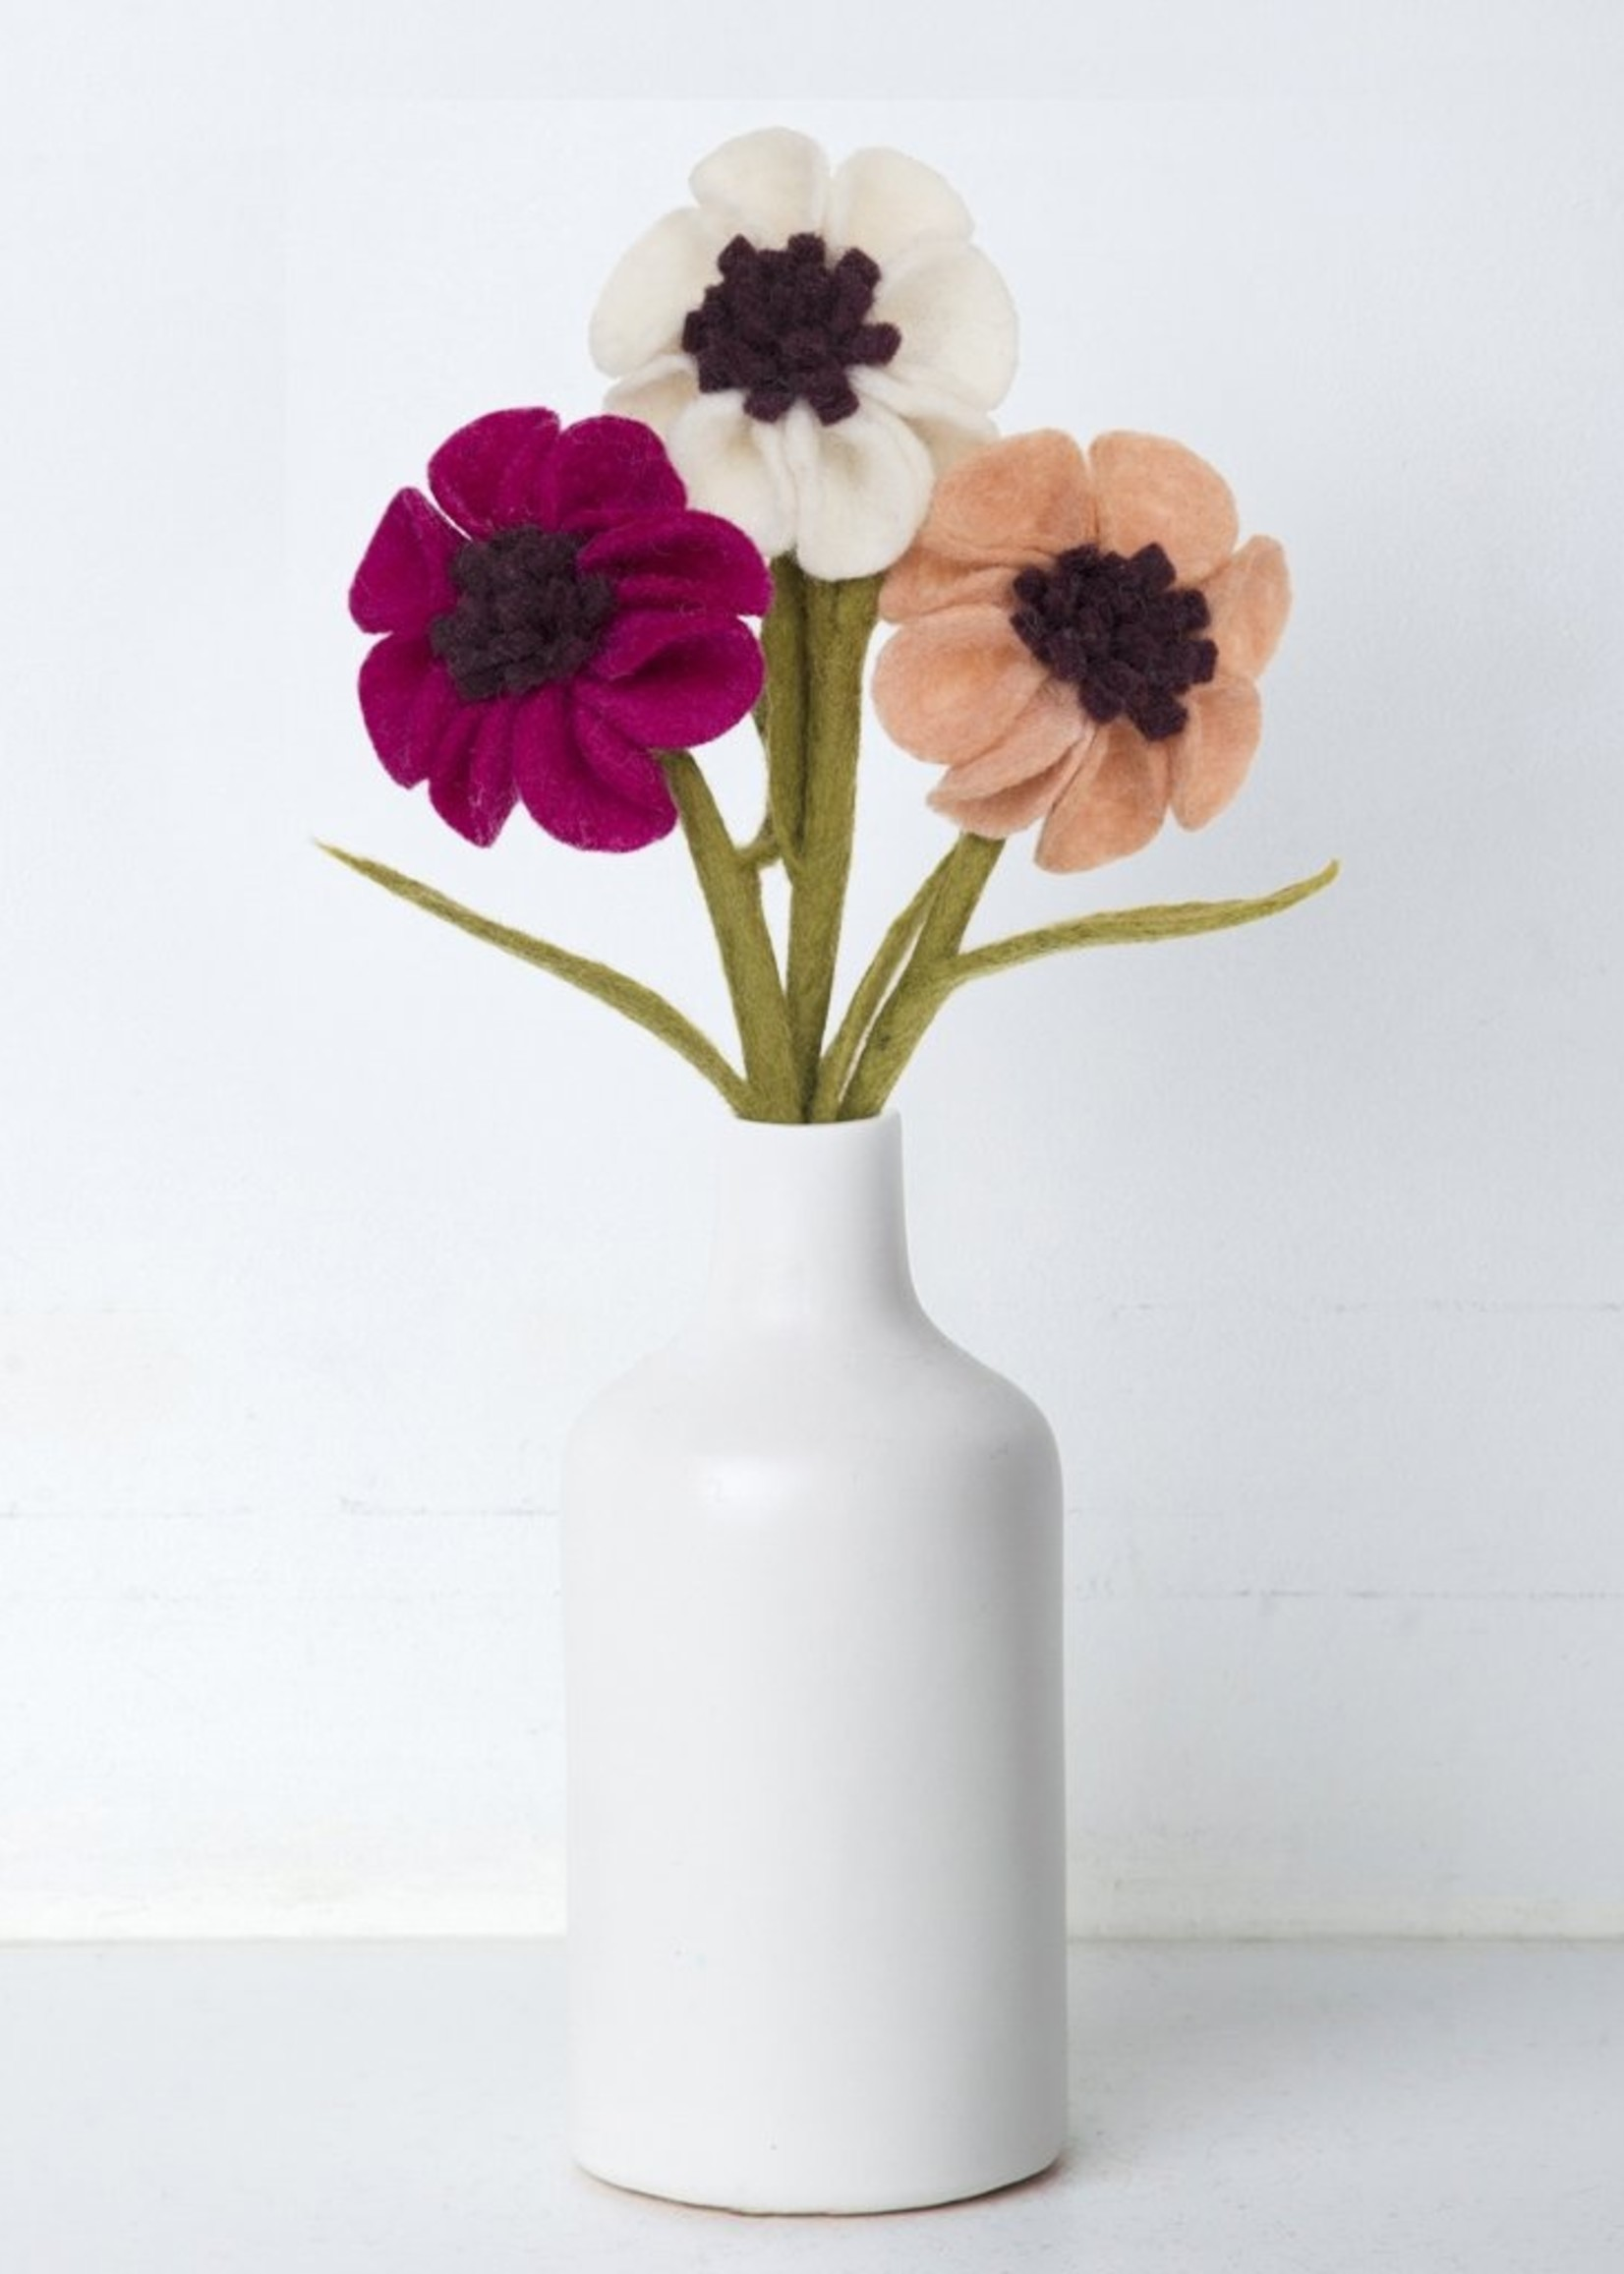 Global Goods Partners Felt Anemone Flower